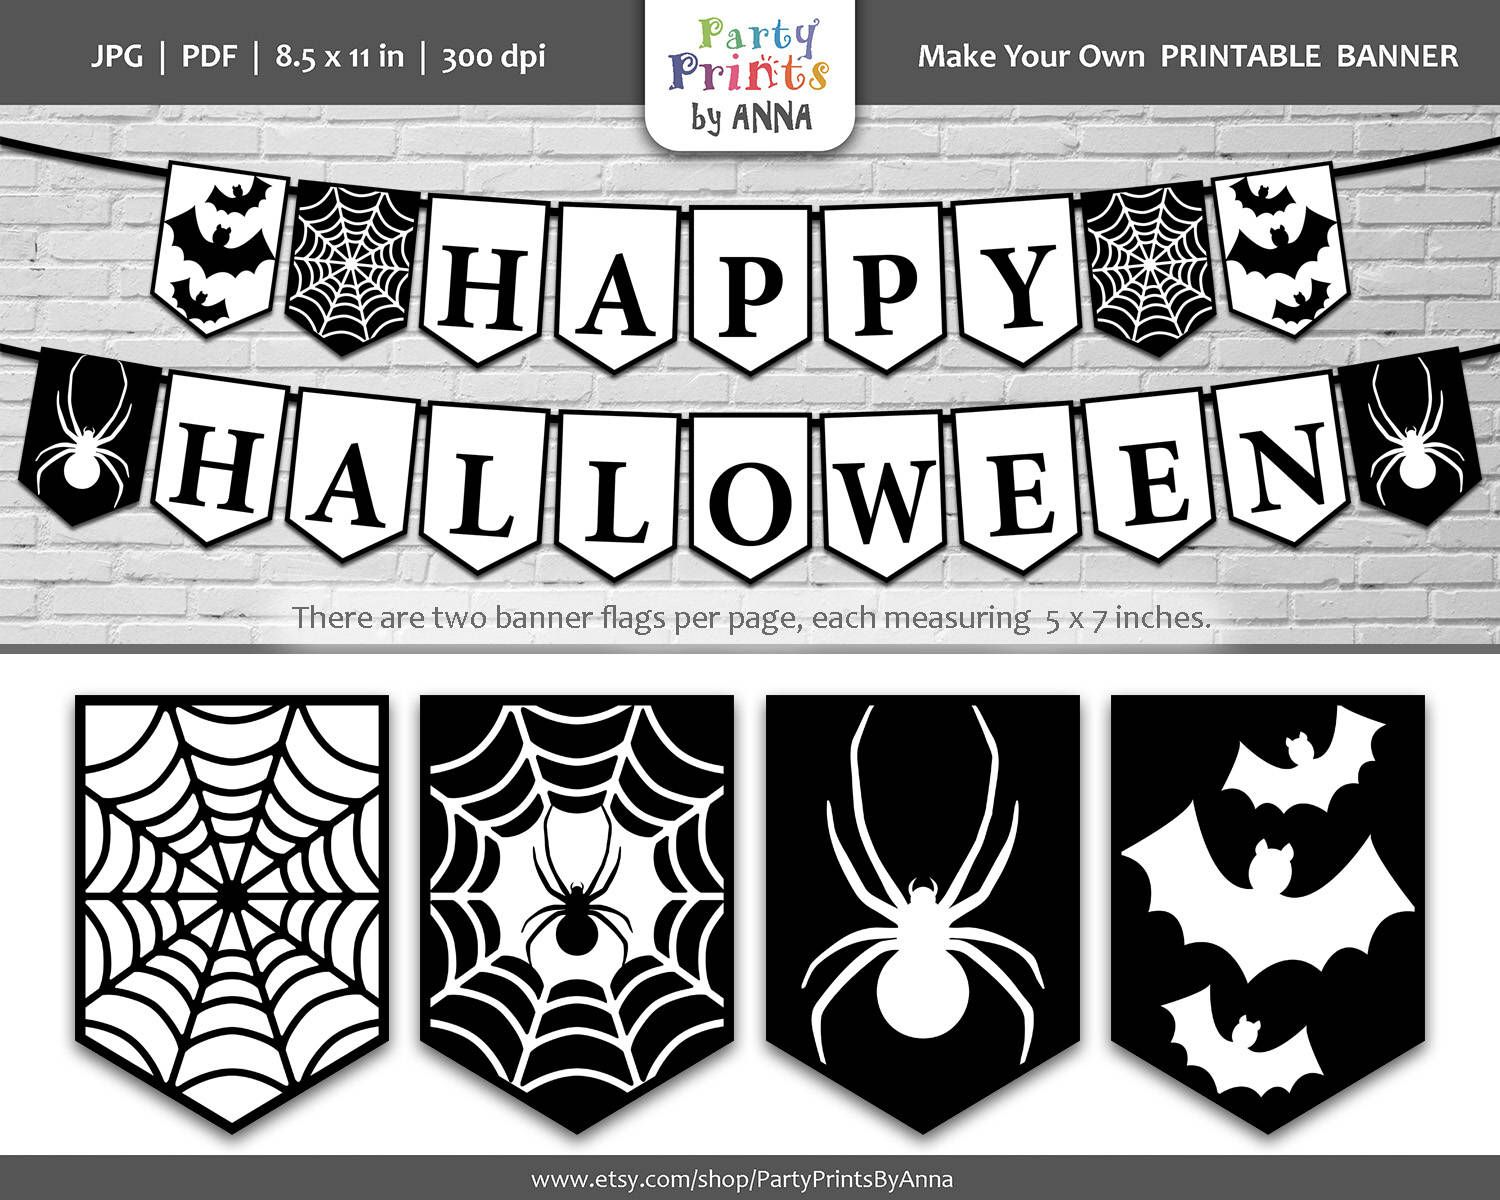 Black And White Printable Happy Halloween Banner Halloween Bunting Banner Penn Halloween Bunting Banner Printable Halloween Decorations Happy Halloween Banner